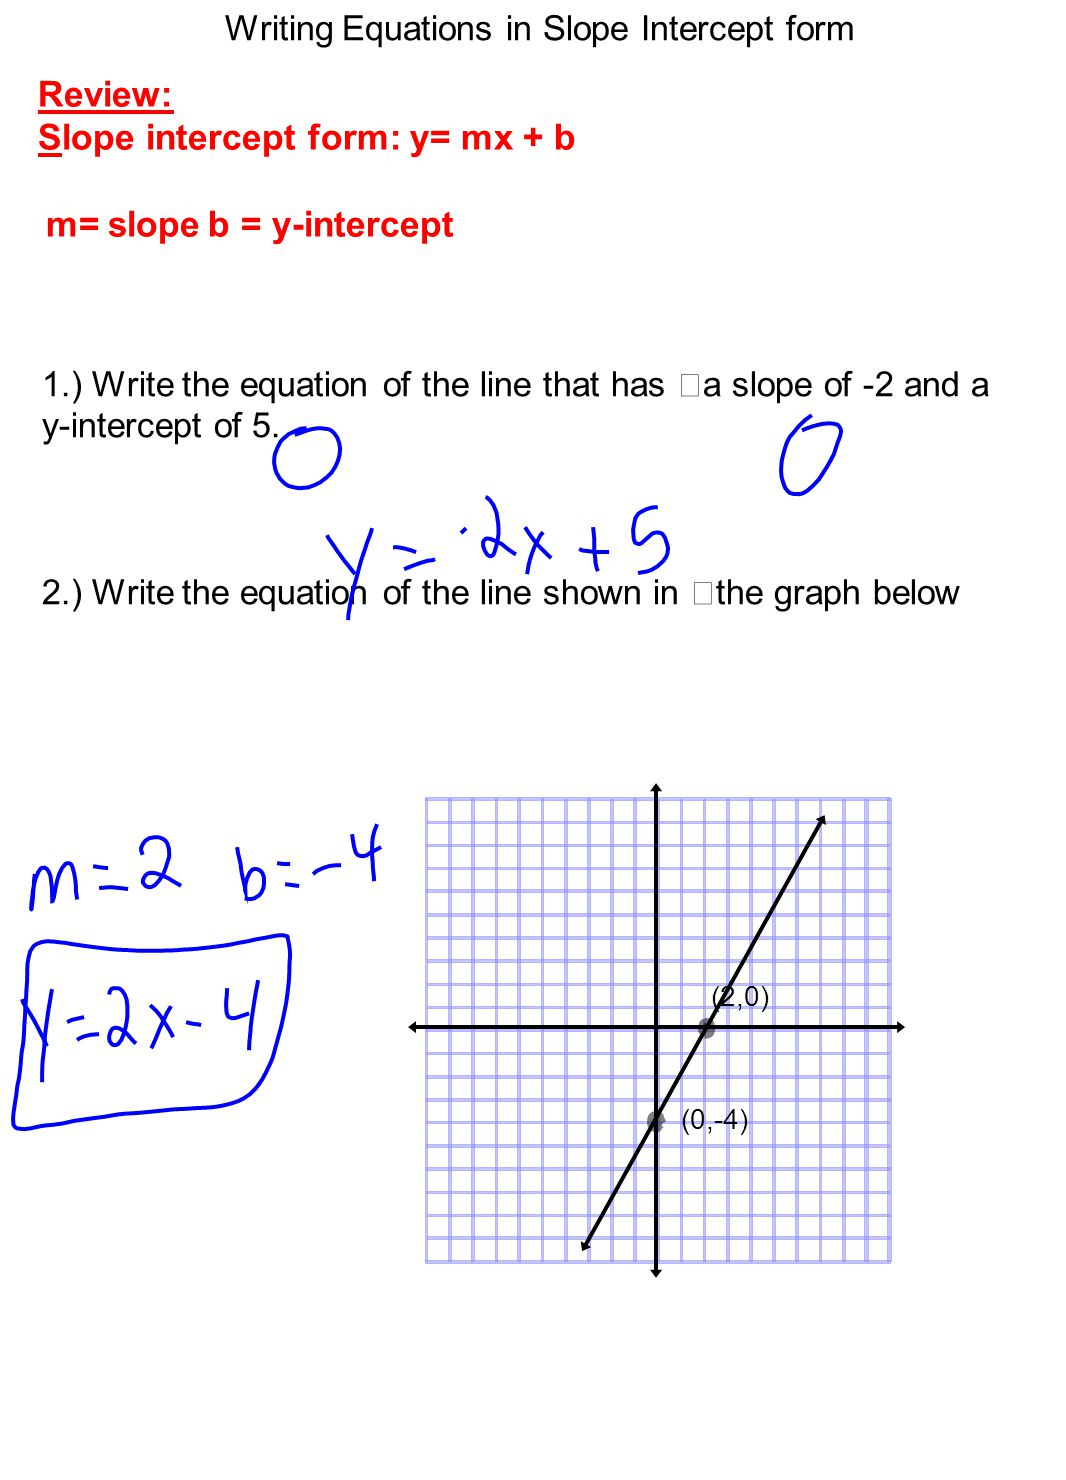 find an equation for the line whose graph is sketched.